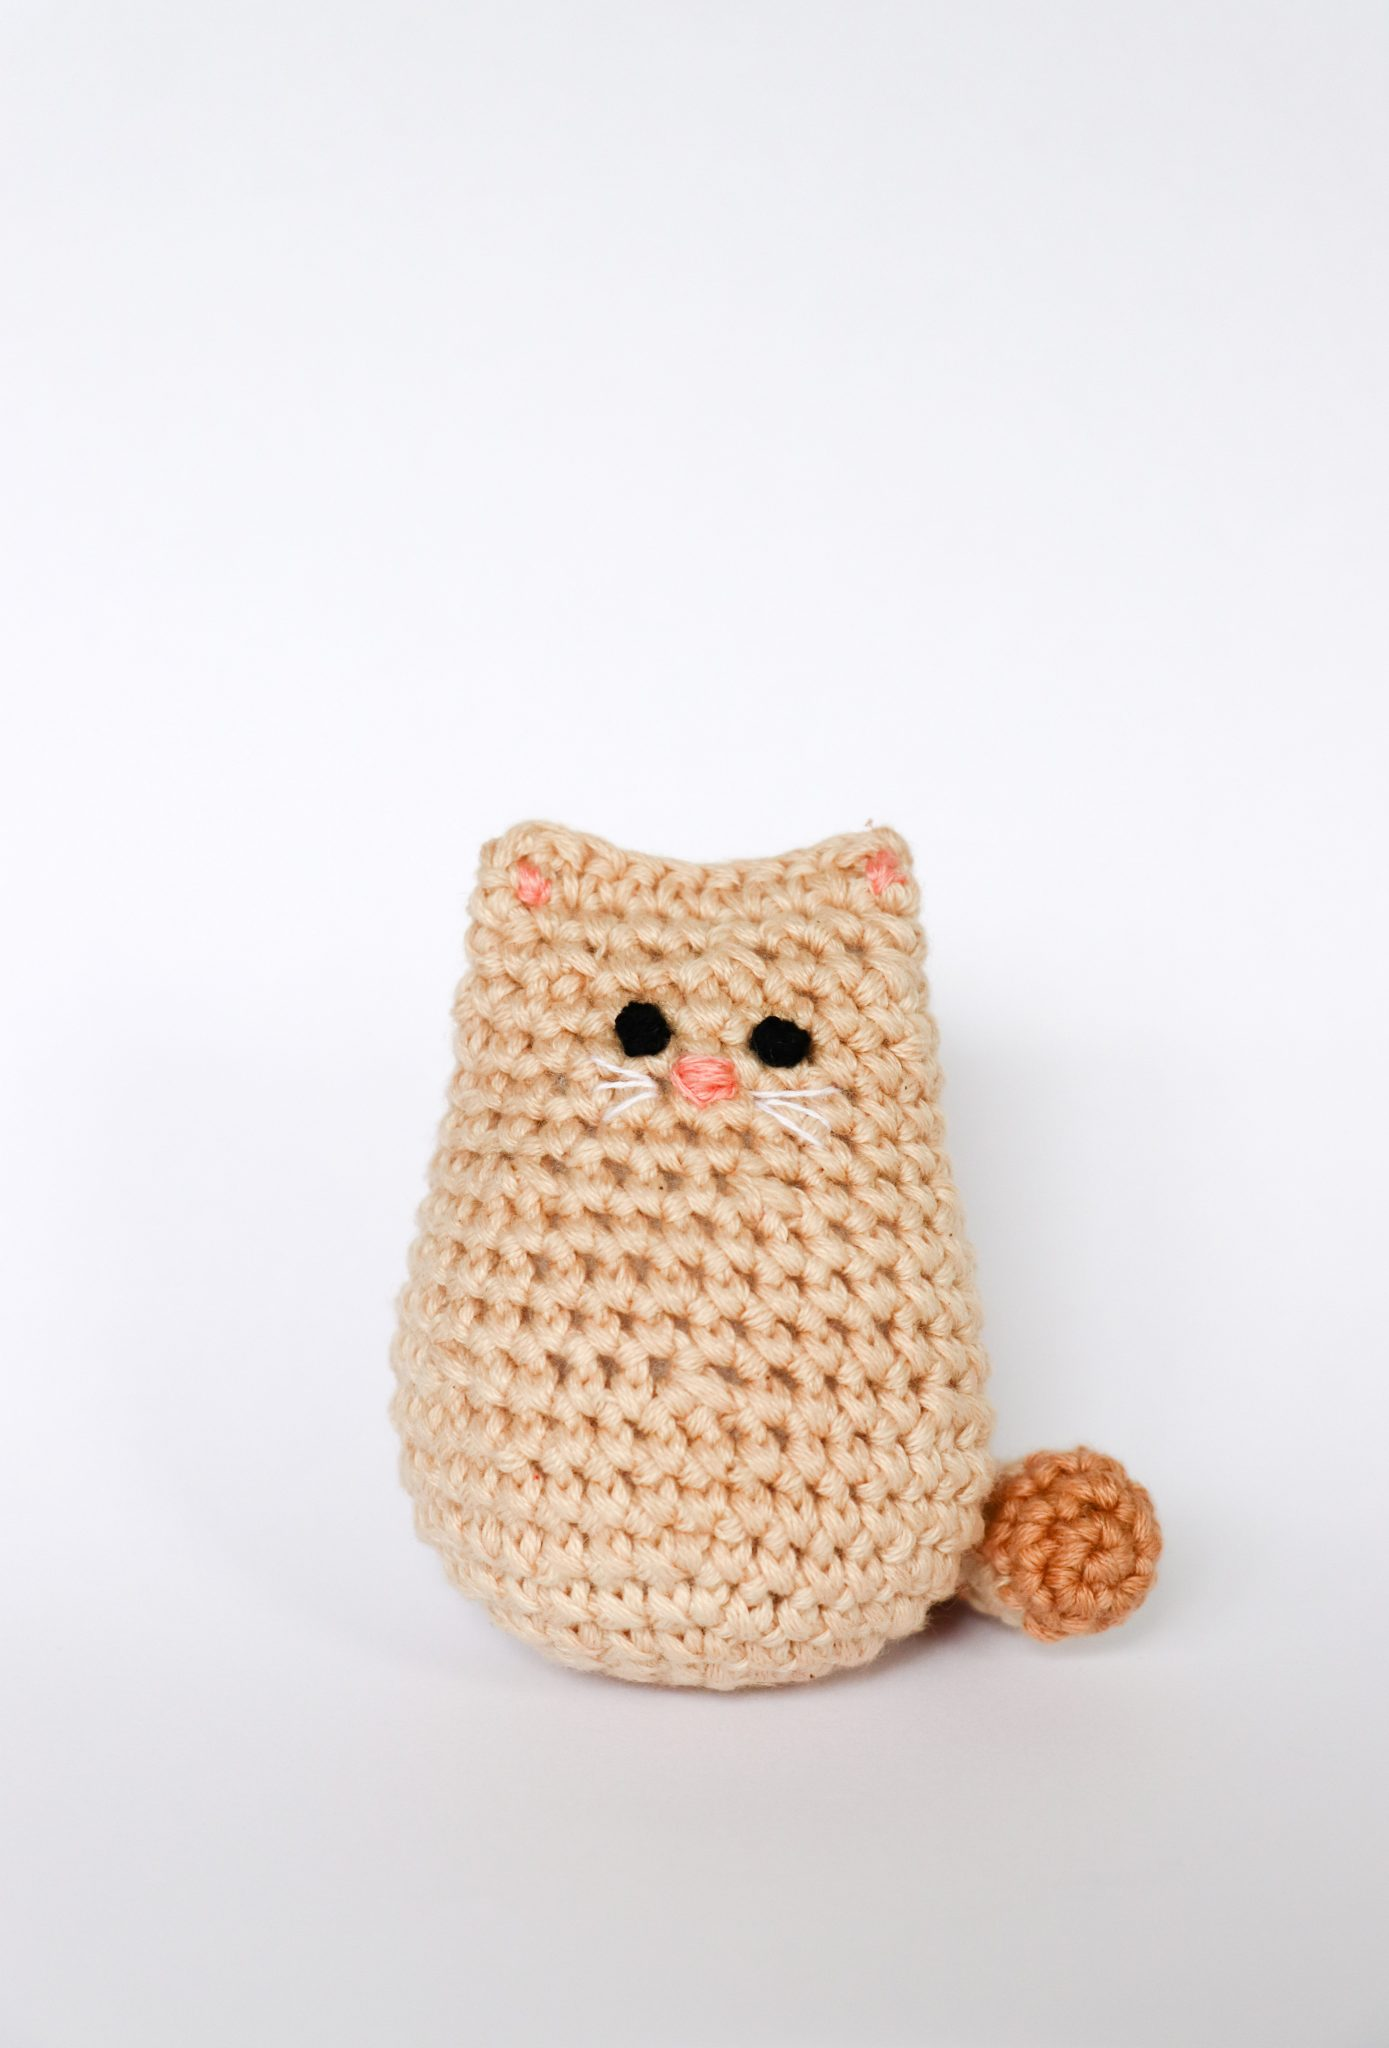 Itty Bitty Crochet Kitty - These free amigurumi patterns and crochet toys are so fun, it will make you want to be a kid again. These cute patterns are imaginative and sweet. #AmigurumiPatterns #CrochetPatterns #FreeCrochetPatterns